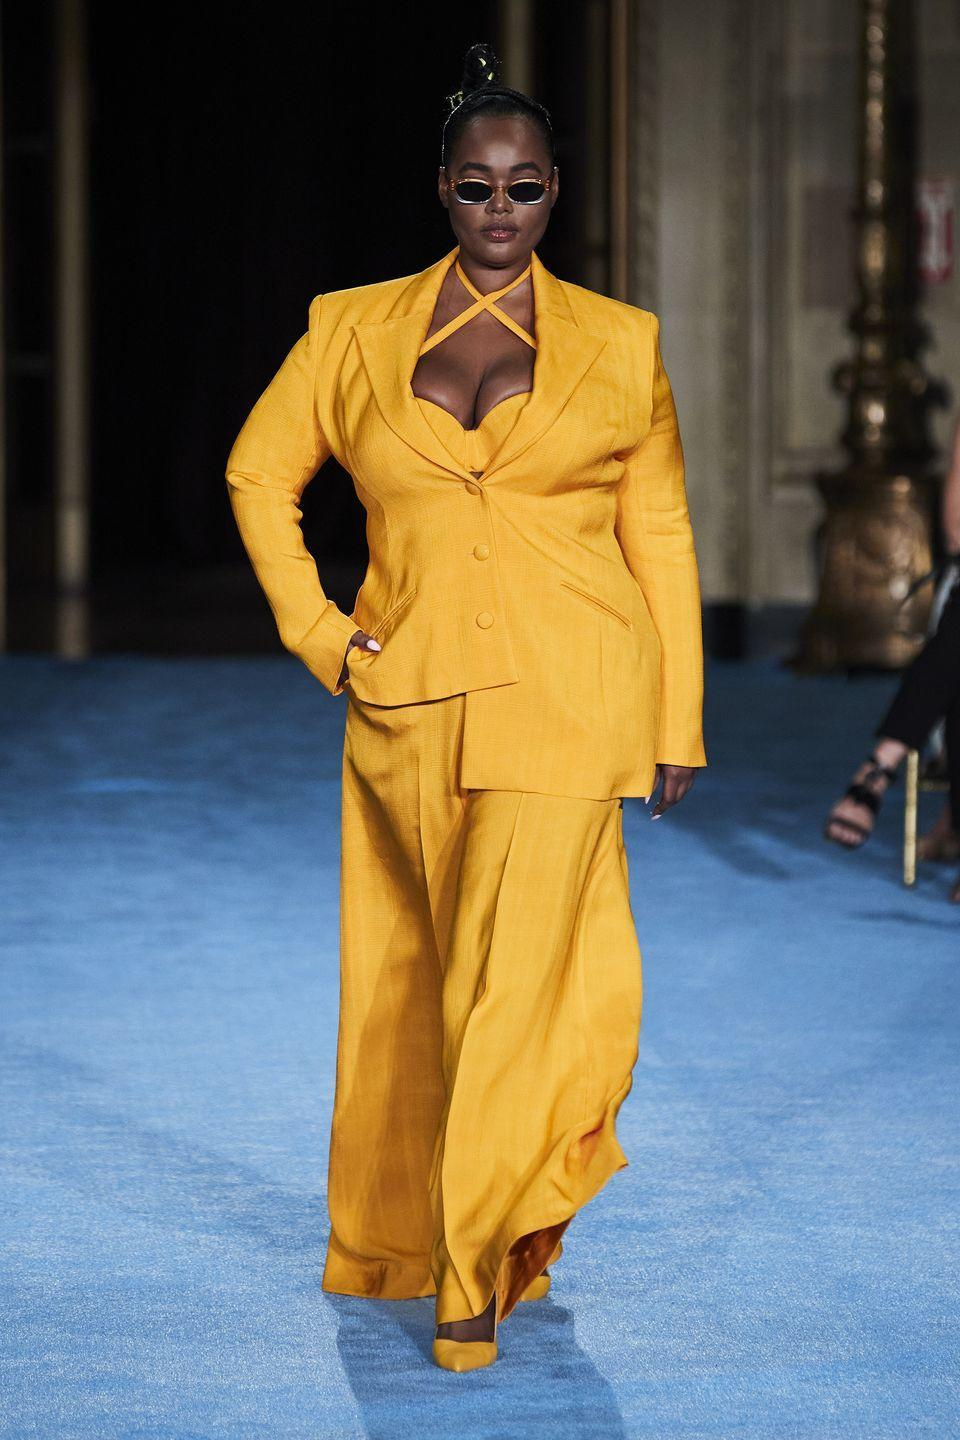 <p>Christian Siriano looked to Italian glamour for his spring/summer 2022 collection, which he presented at New York City's Gotham Hall. The designer particularly sought inspiration in his Italian grandmother, who he named as the season's muse, injecting bright colours and dramatic silhouettes into the collection, which he found her wearing in old family photographs.</p>